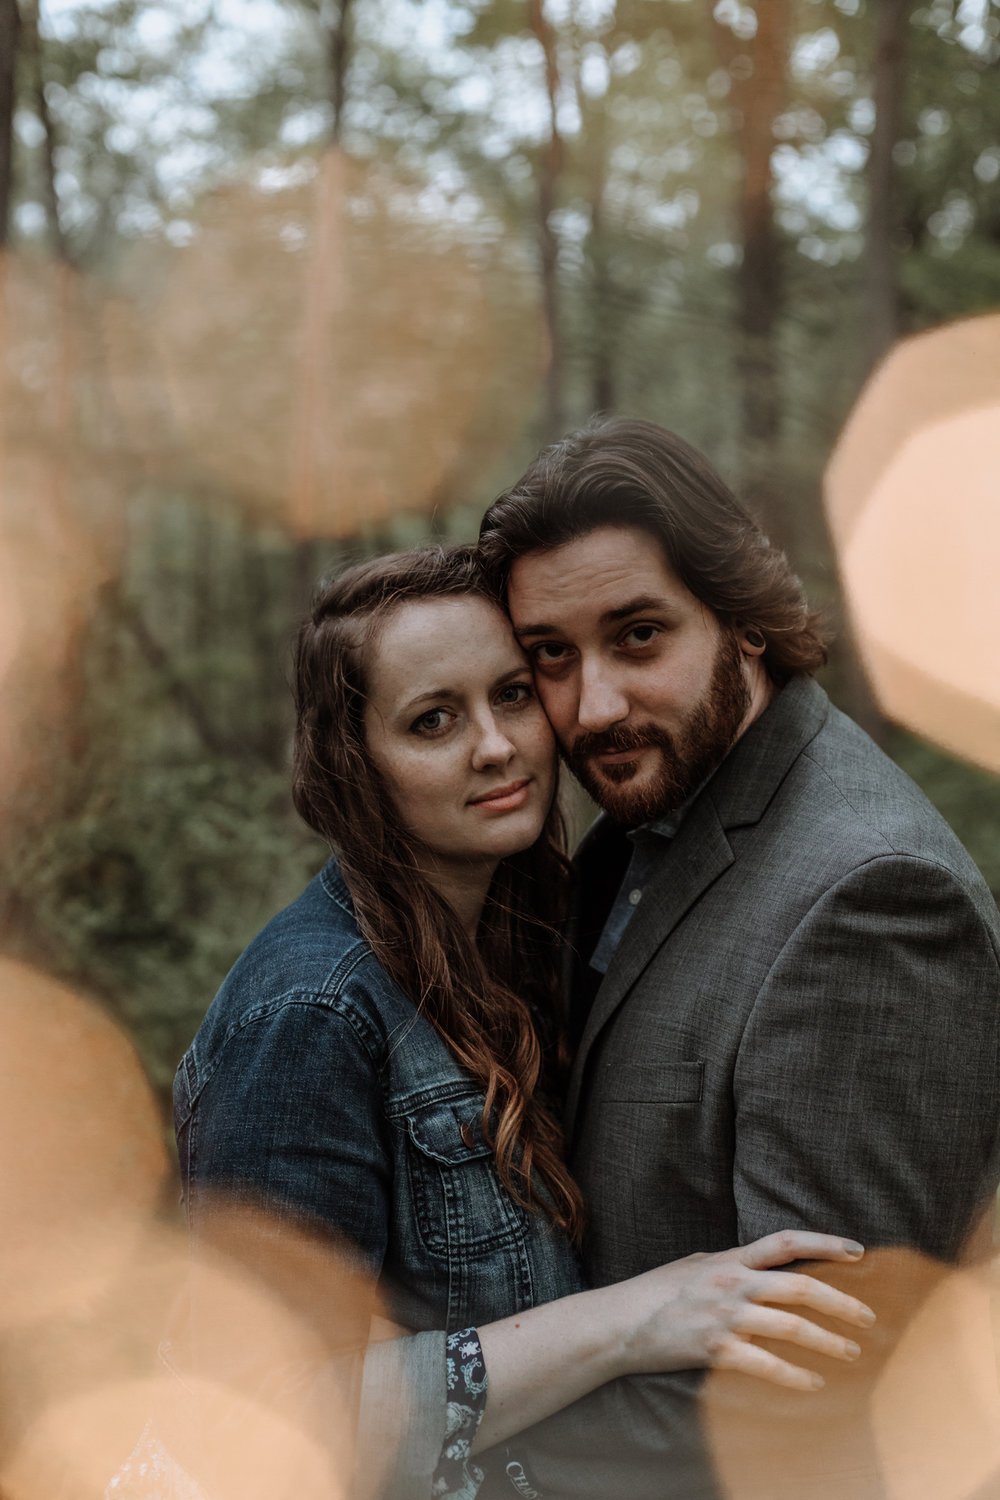 lehigh-valley-engagement-portrait-raw-emotion